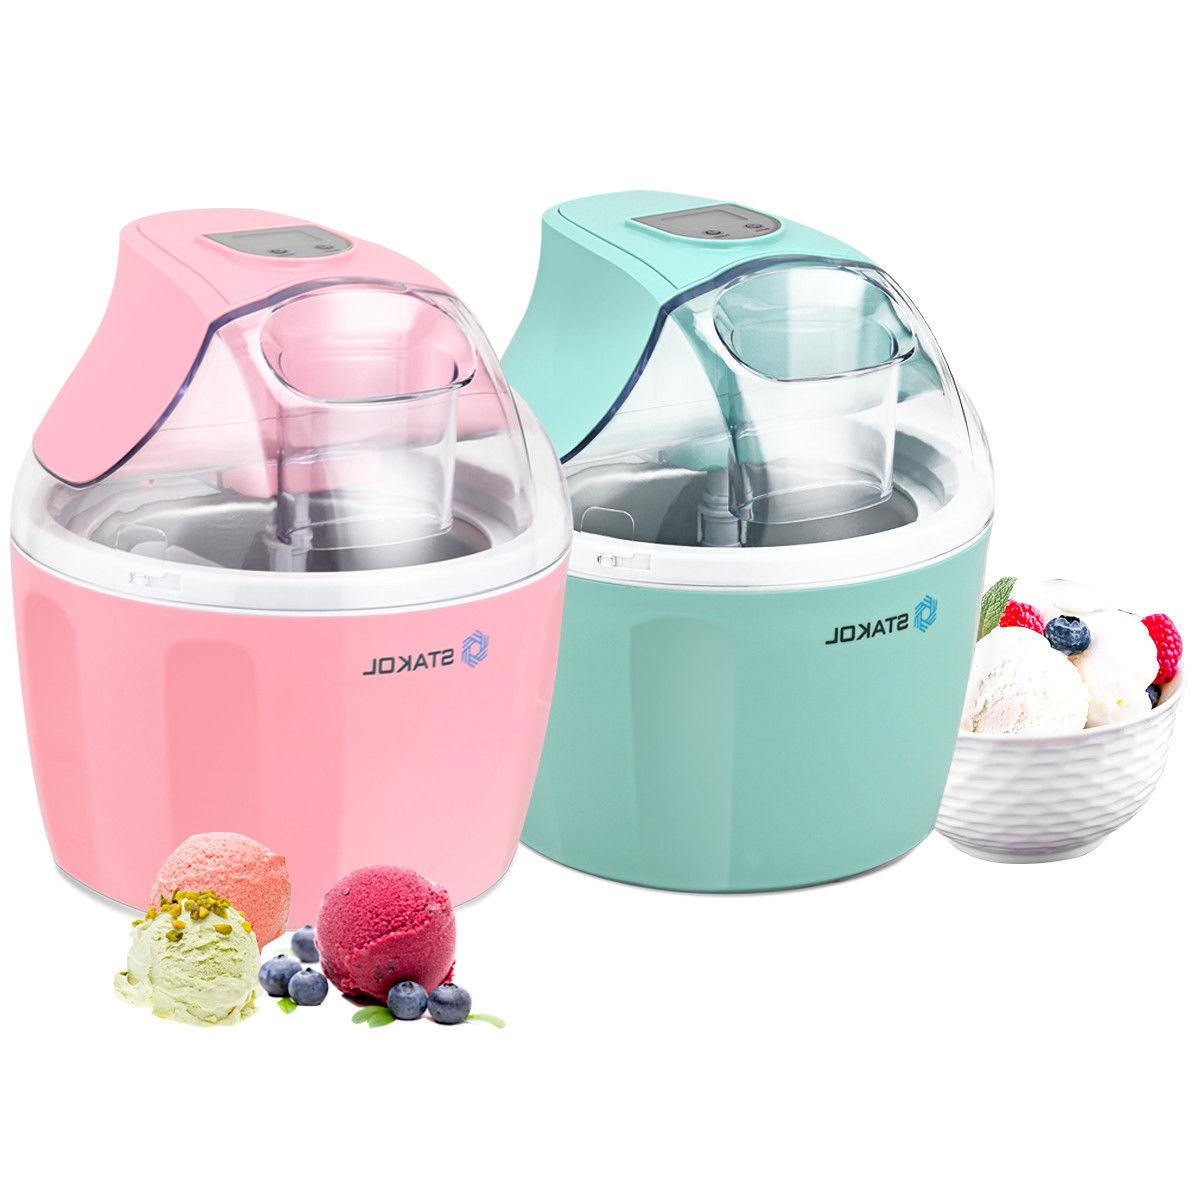 1.5 Automatic Ice Cream Maker Freezer